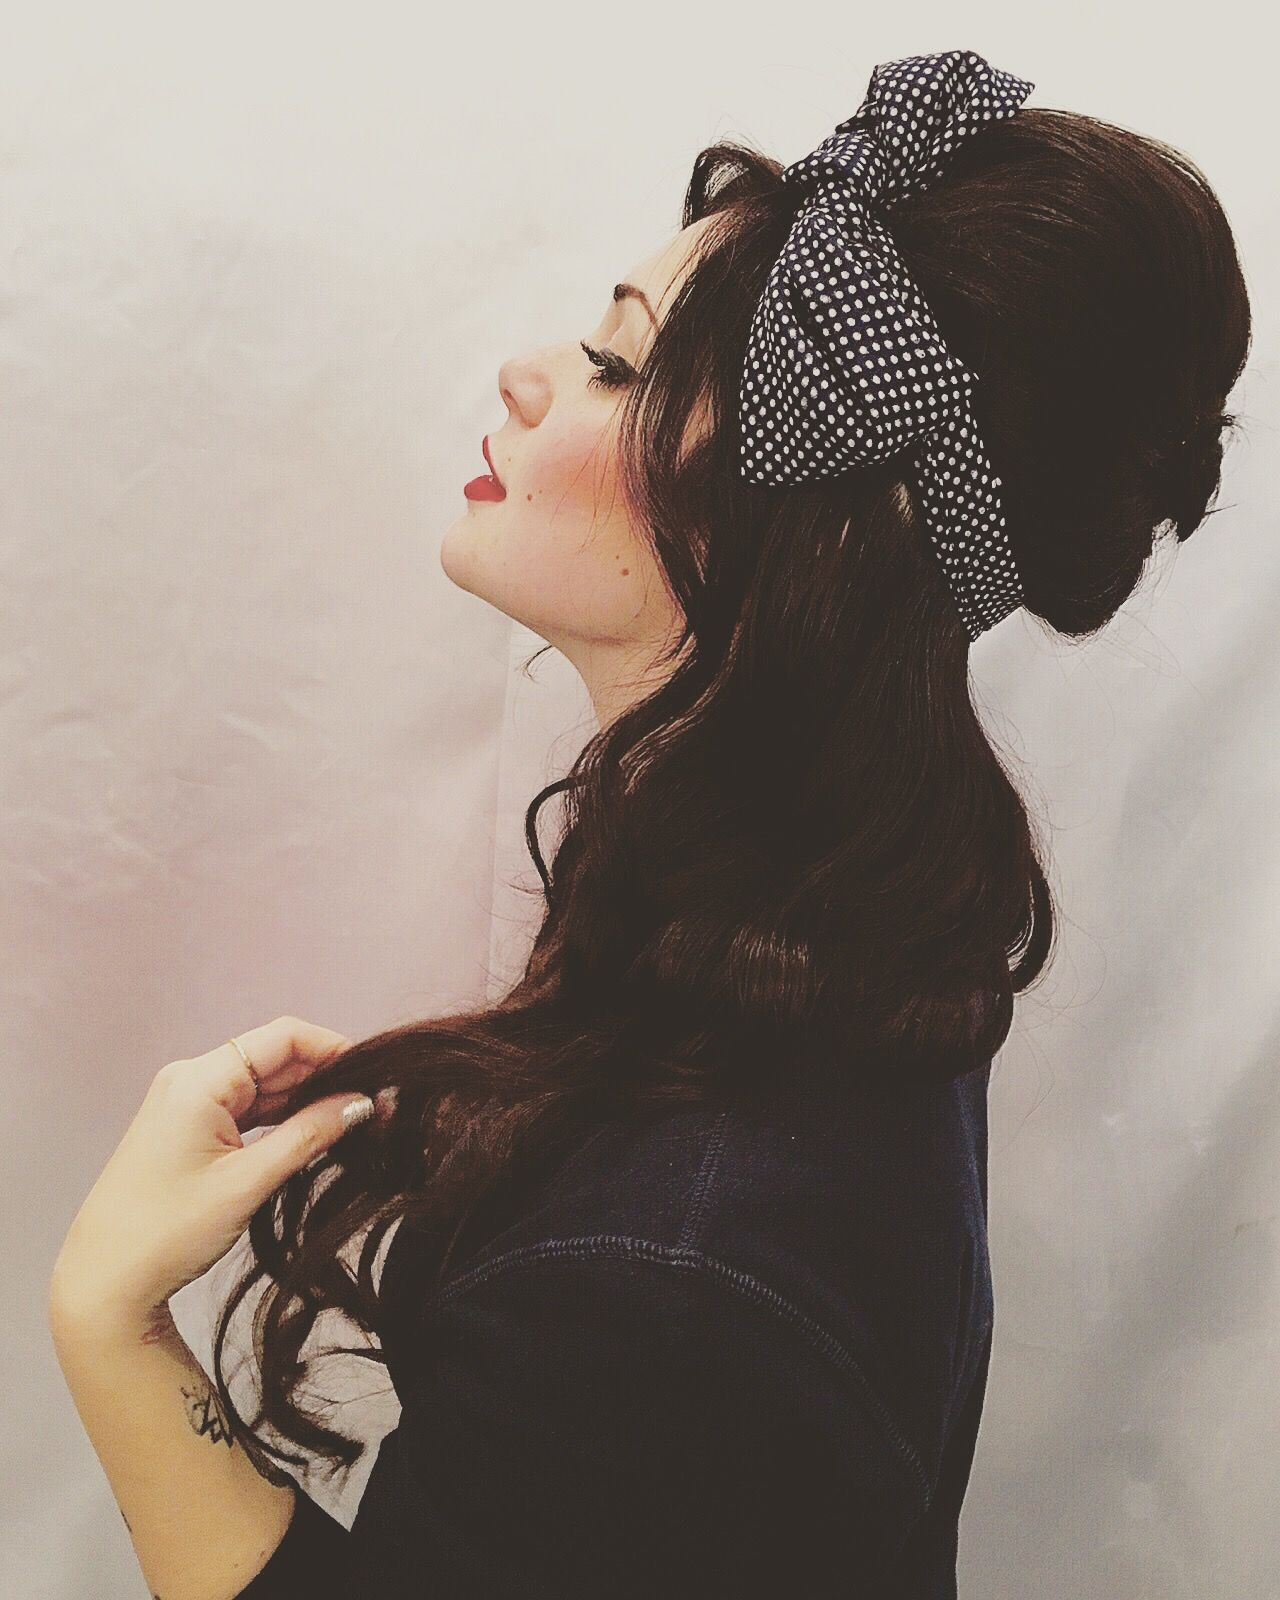 #hair #hairstyle #wavy #extension #amywinehouse